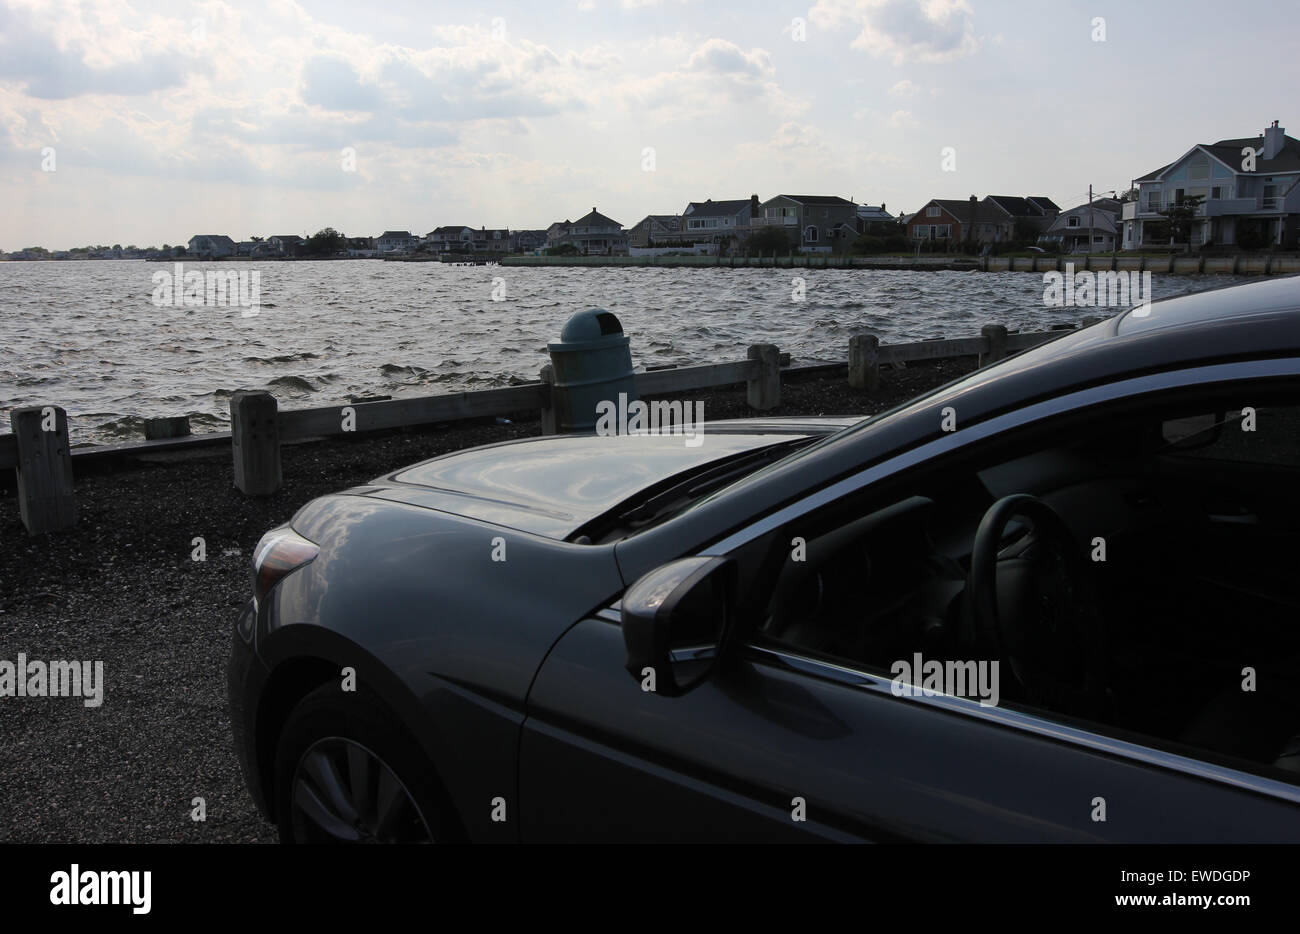 Parked car by the water's edge - Stock Image